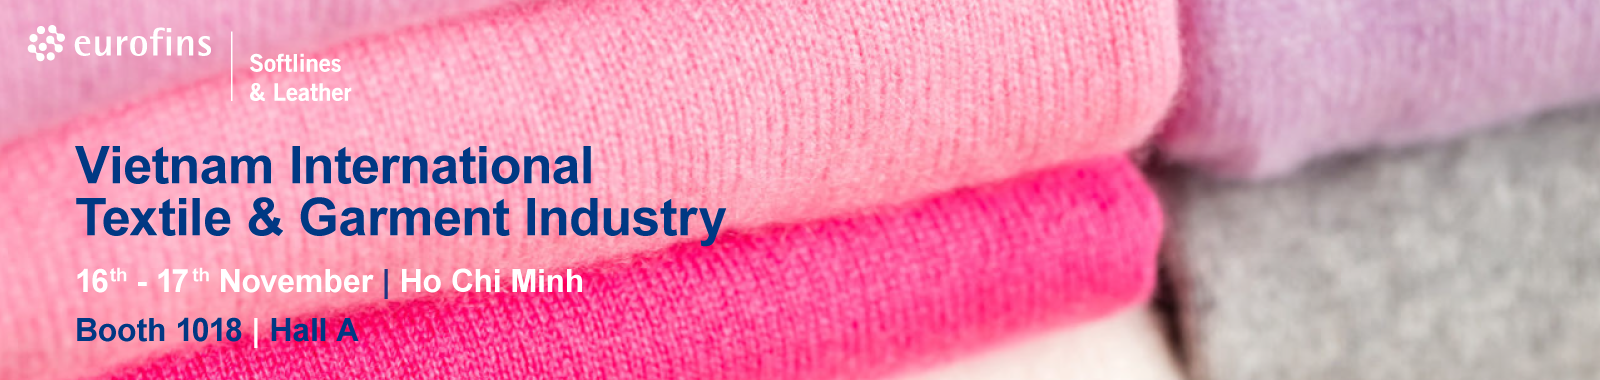 Vietnam International Textile & Garment Industry